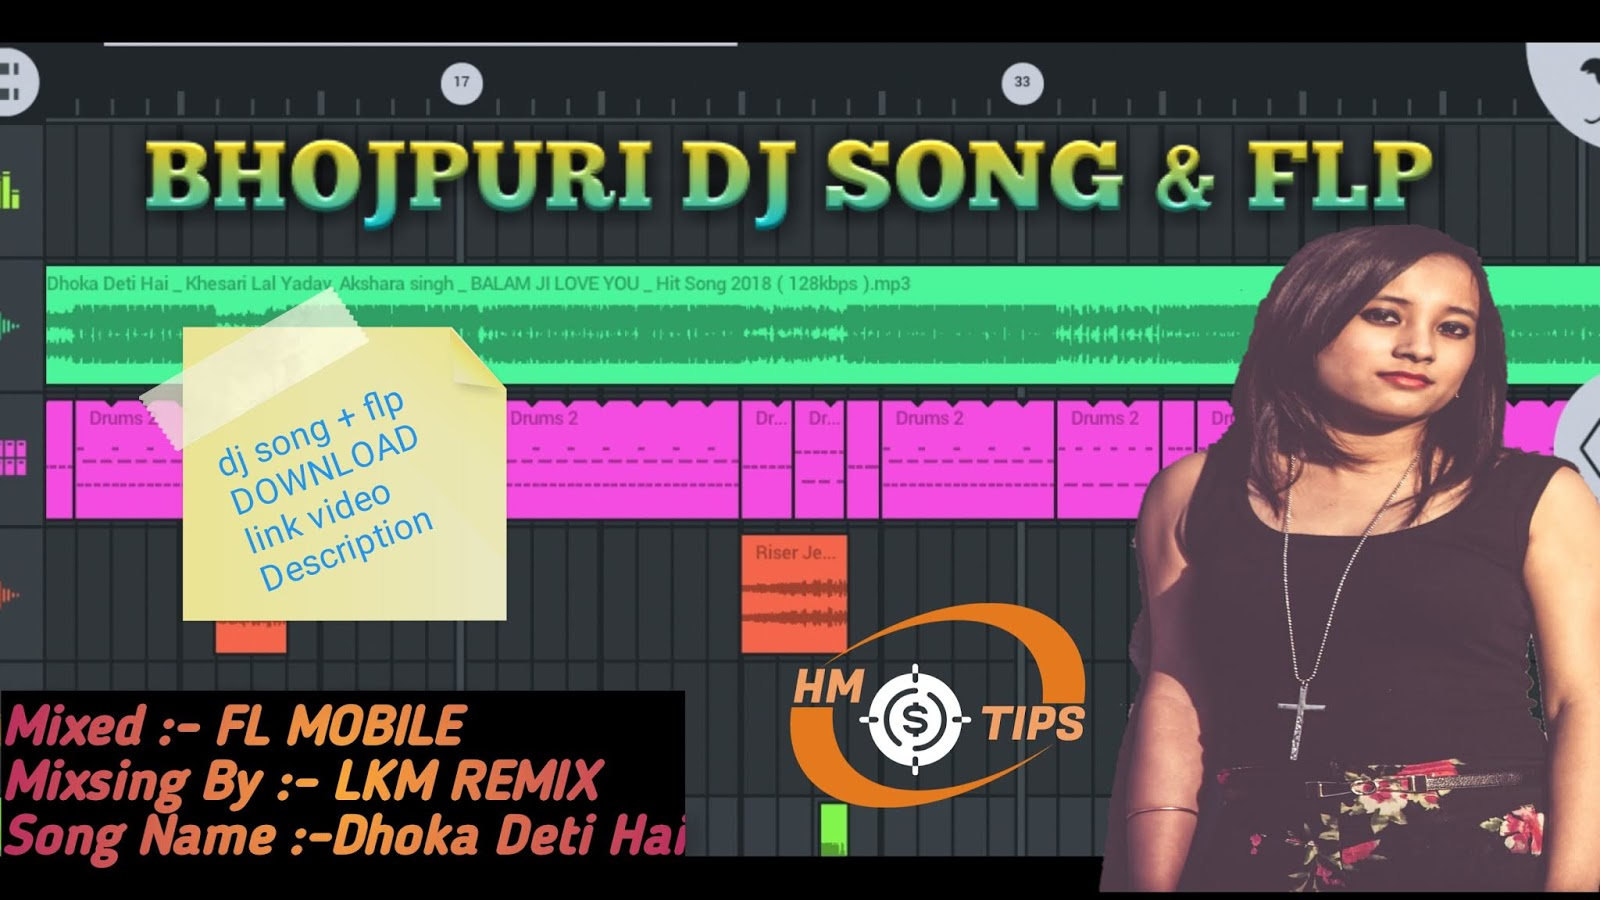 ⚡ Bhojpuri video song dj download 2018 | Bhojpuri Dj Songs (2018